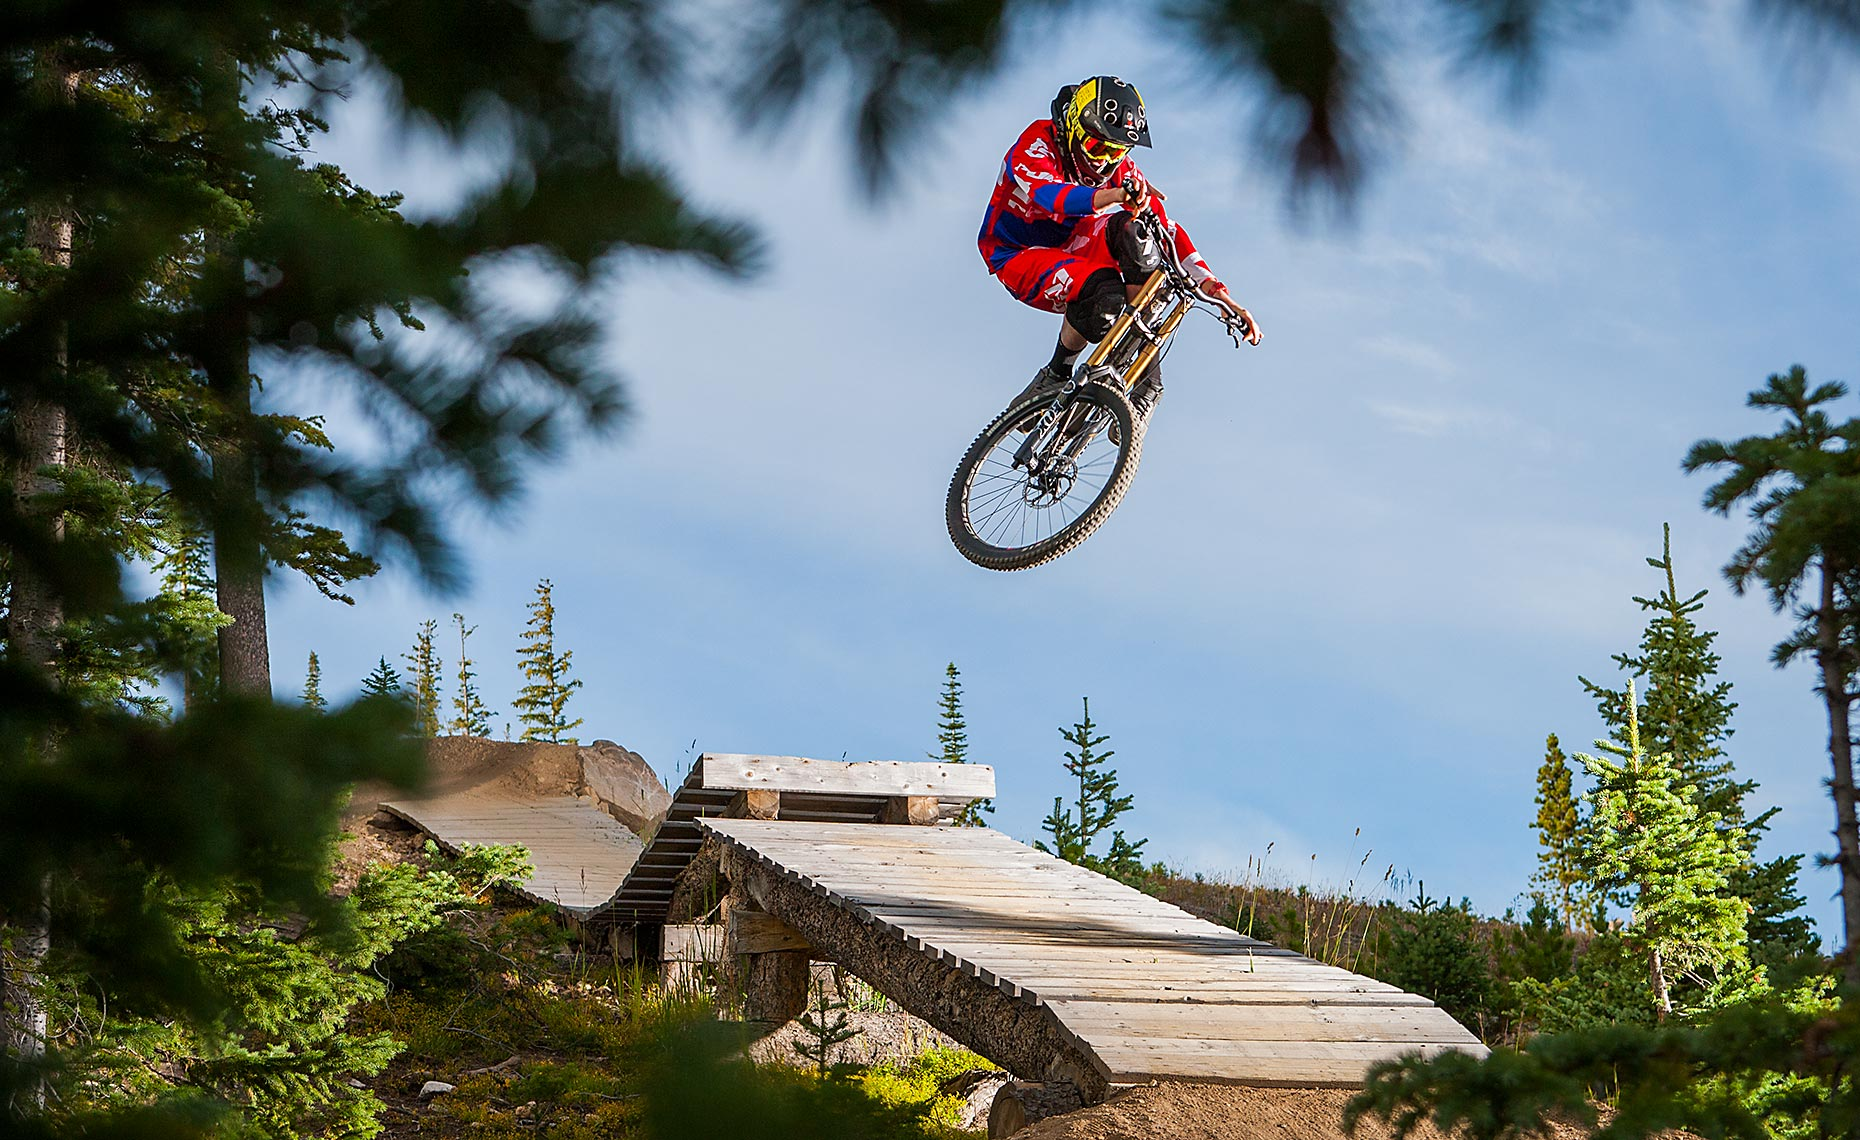 0313-Dillon-Lemarr-Trestle-Bike-Park-Chris-Wellhausen-12-RGB